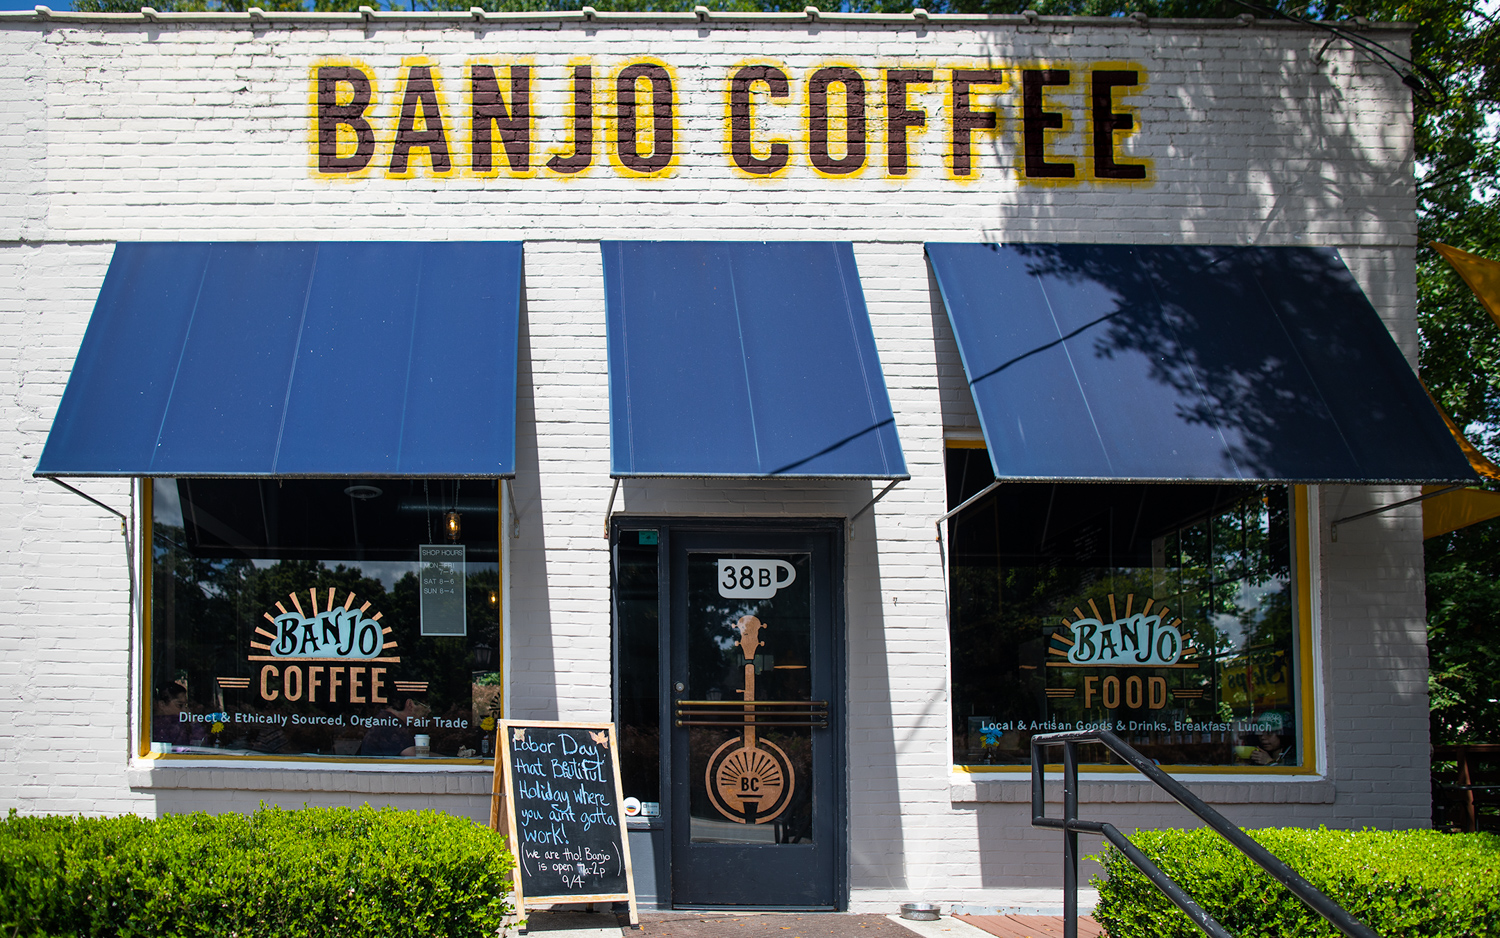 Banjo Coffee Shop exterior view. (Note: this photo was captured approximately one year ago prior to Labor Day).